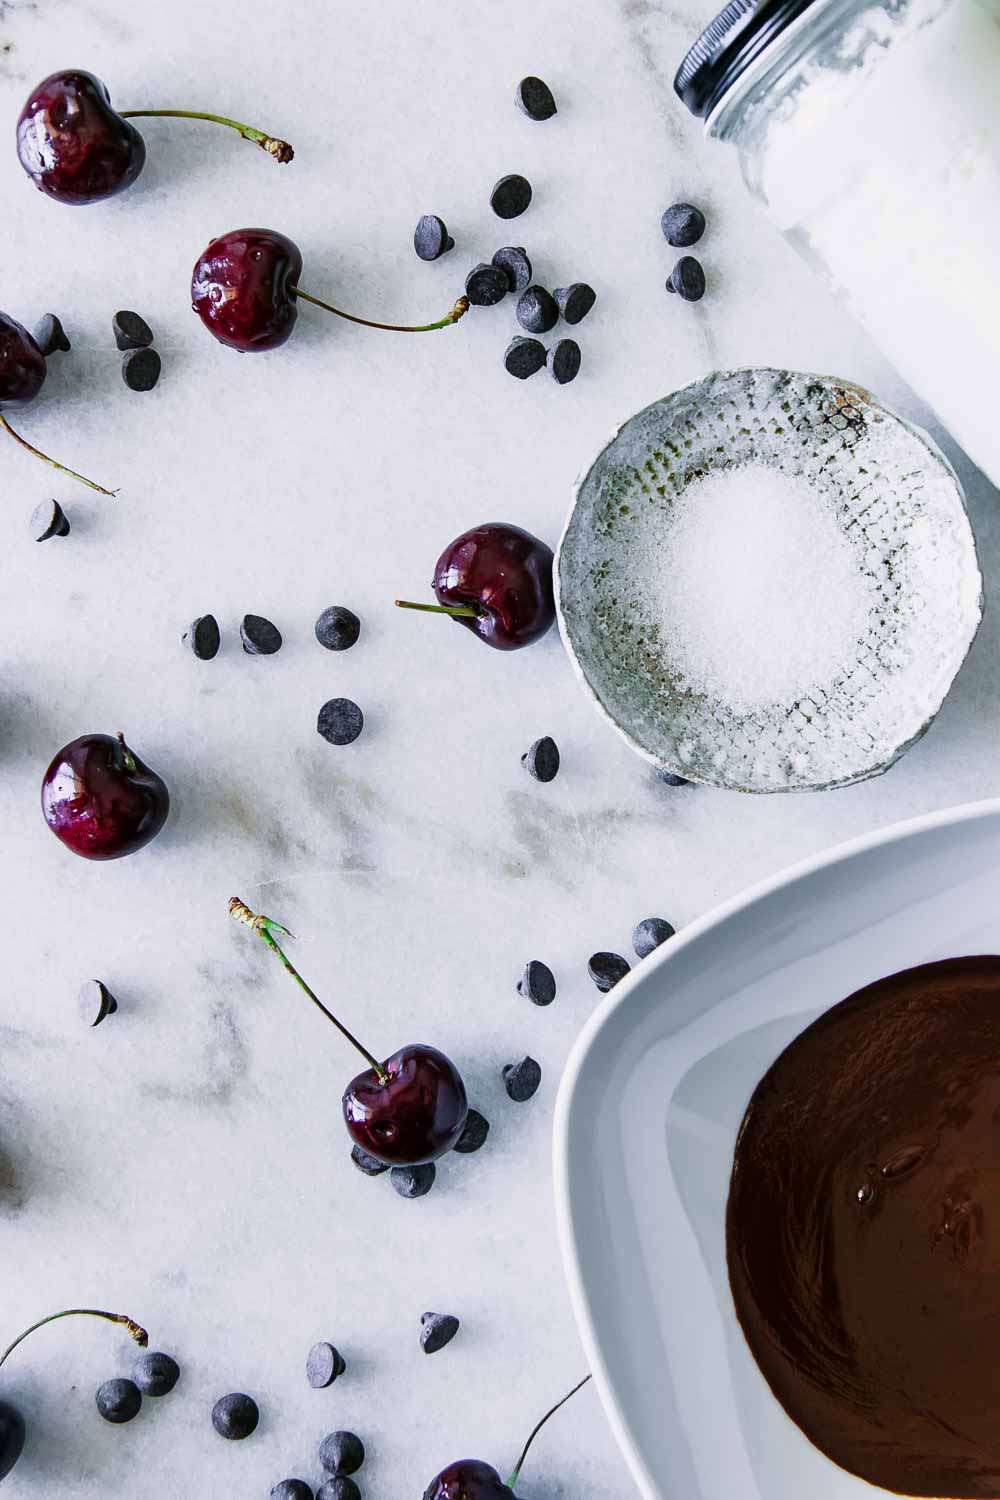 black cherries, dark chocolate chips, a bowl of sea salt, and a bowl of melted chocolate on a white marble table